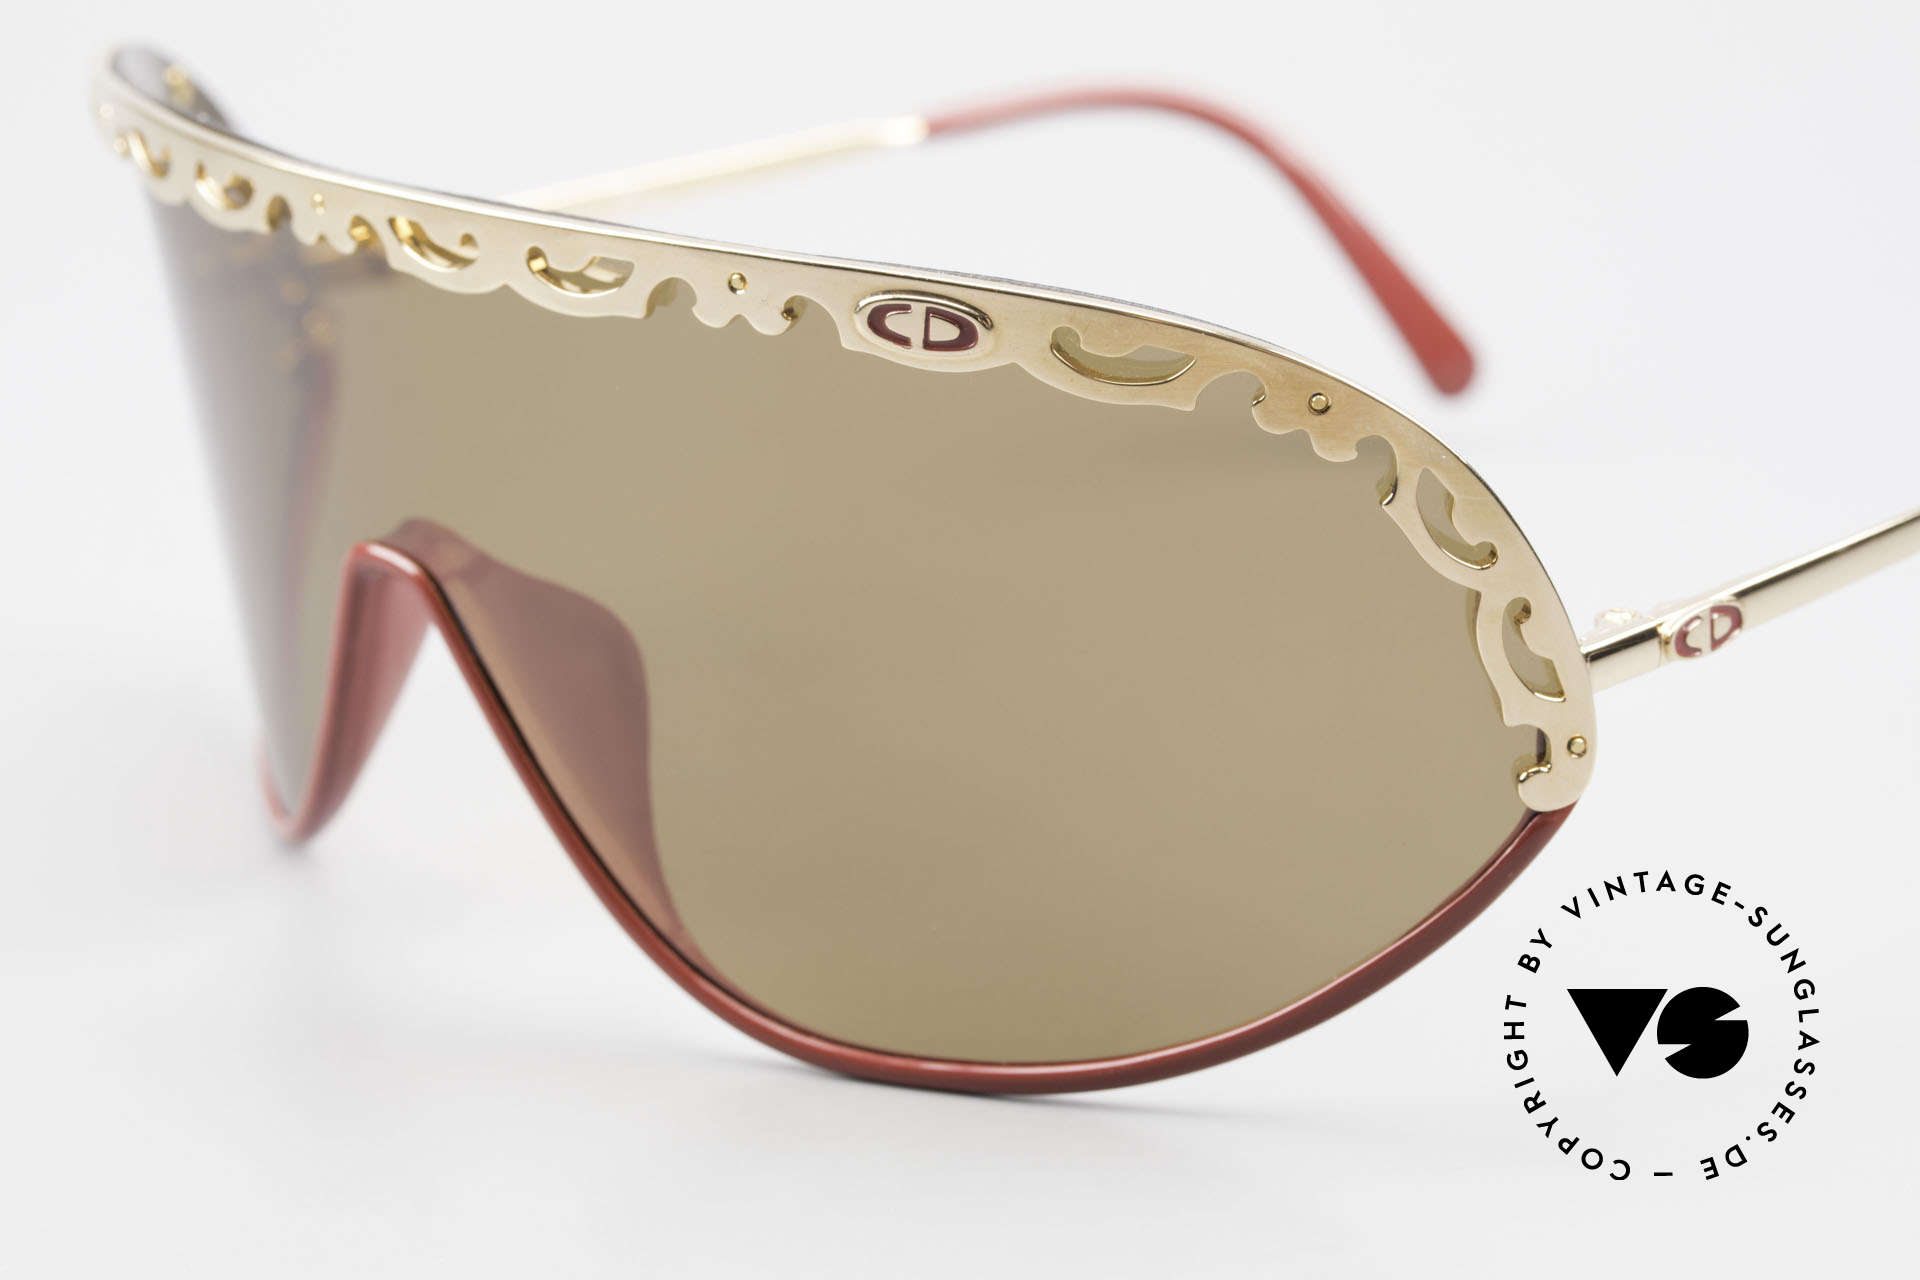 Christian Dior 2501 Panorama View Sunglasses 80's, functional designer shades with polarized lens / shield, Made for Women